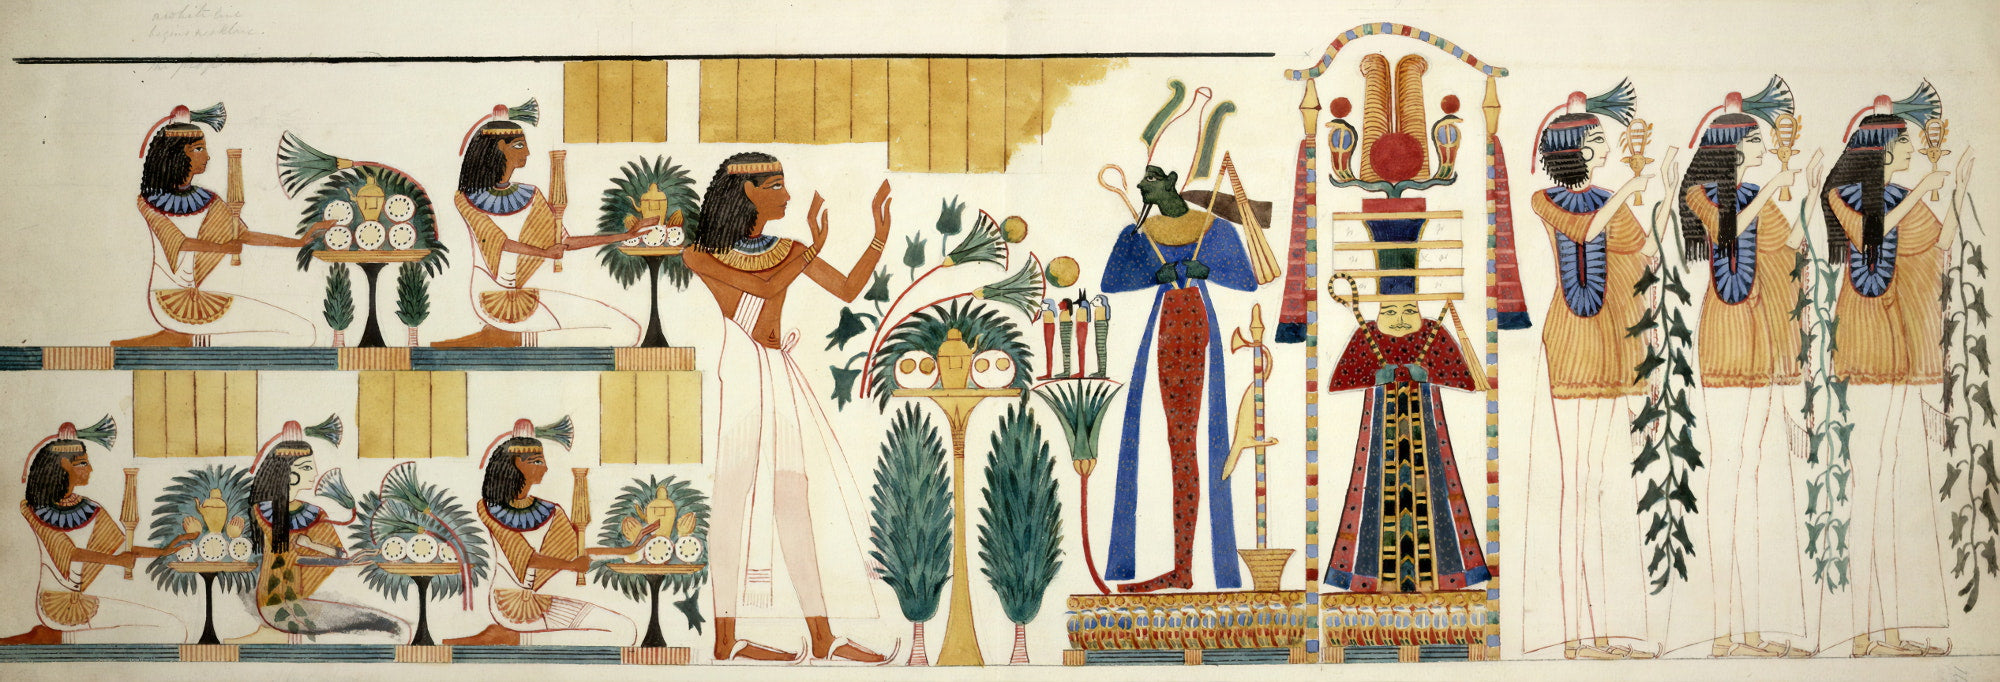 history of plugs in egypt & ear stretching